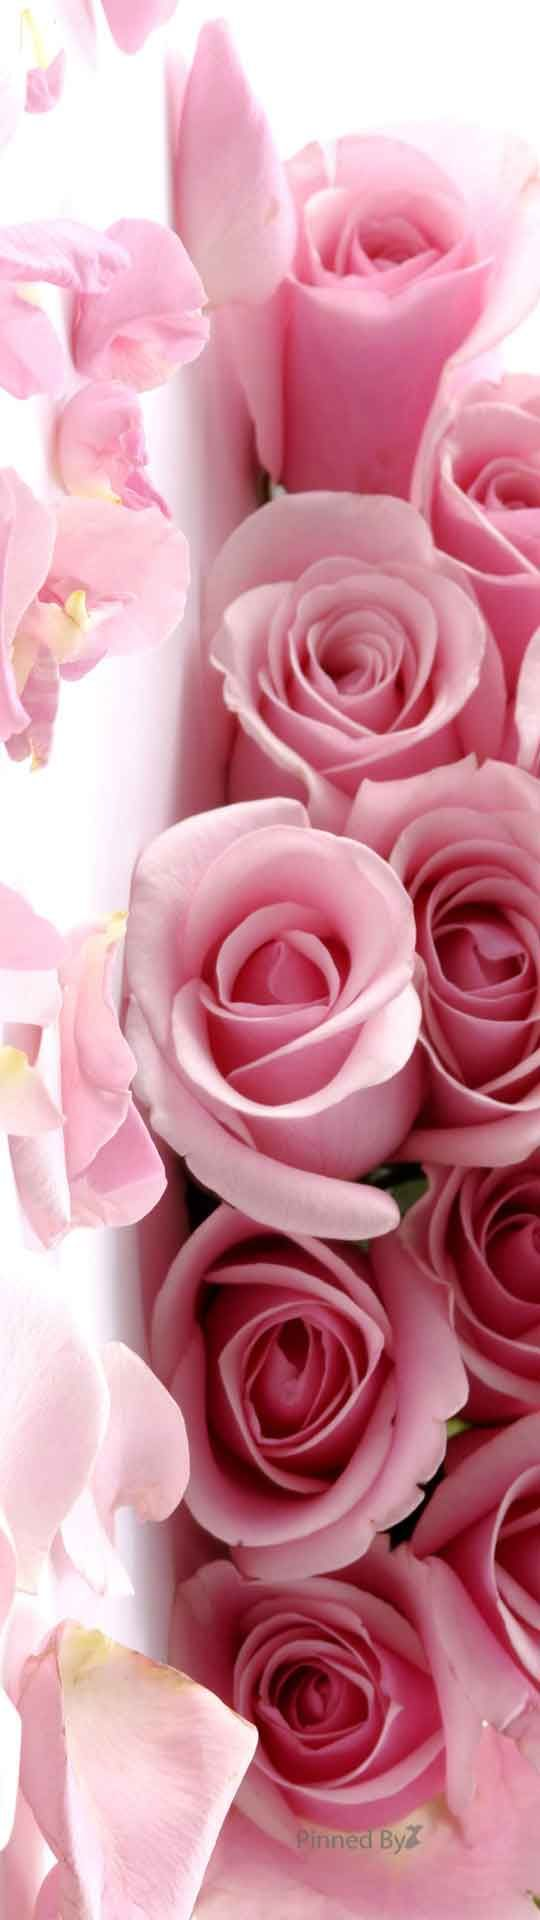 Pink Roses                                                                                                                                                                                 More